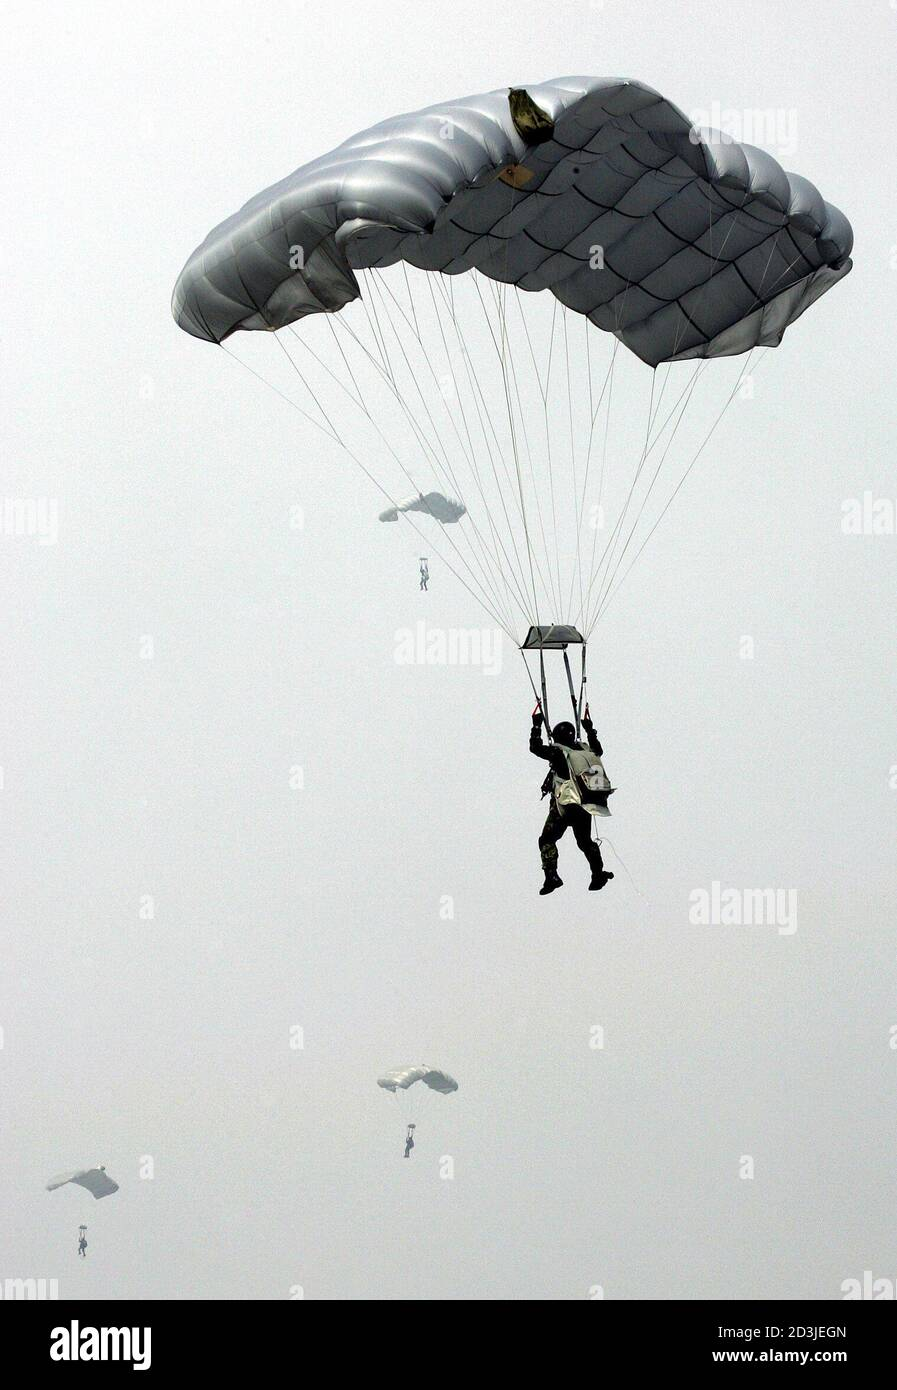 "A parachutist prepares to land during an anti-airborne military exercise at the CCK air base in Taichung, central Taiwan, July 27, 2005. The military exercise, involving simulated repulsion of airborne assaults on an airbase, is part of Taiwan's annual ""Han Kuang"", or Chinese Glory, exercises aimed at testing the military's readiness against a Chinese invasion. Taiwan President Chen Shui-bian warned on Tuesday that arch-rival China's growing missile build-up not only posed a threat to his democratic island, but also endangered the world. REUTERS/Richard Chung  AH/PN Stock Photo"